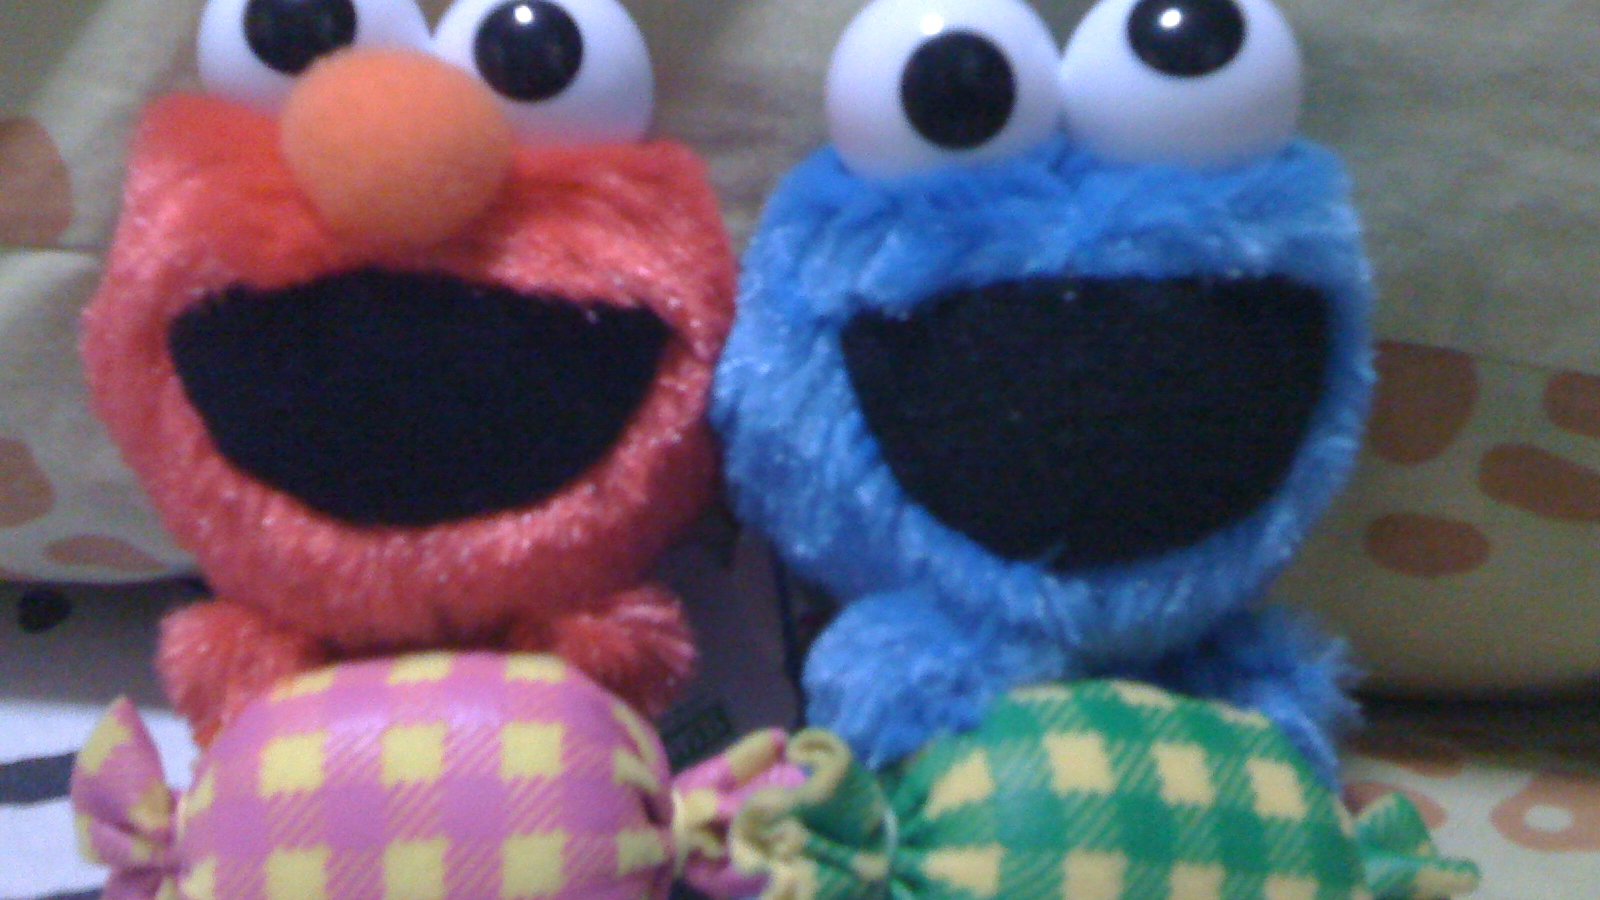 Cute Cookie Monster Wallpaper 1600x1200 Download Resolutions Desktop 1600x900